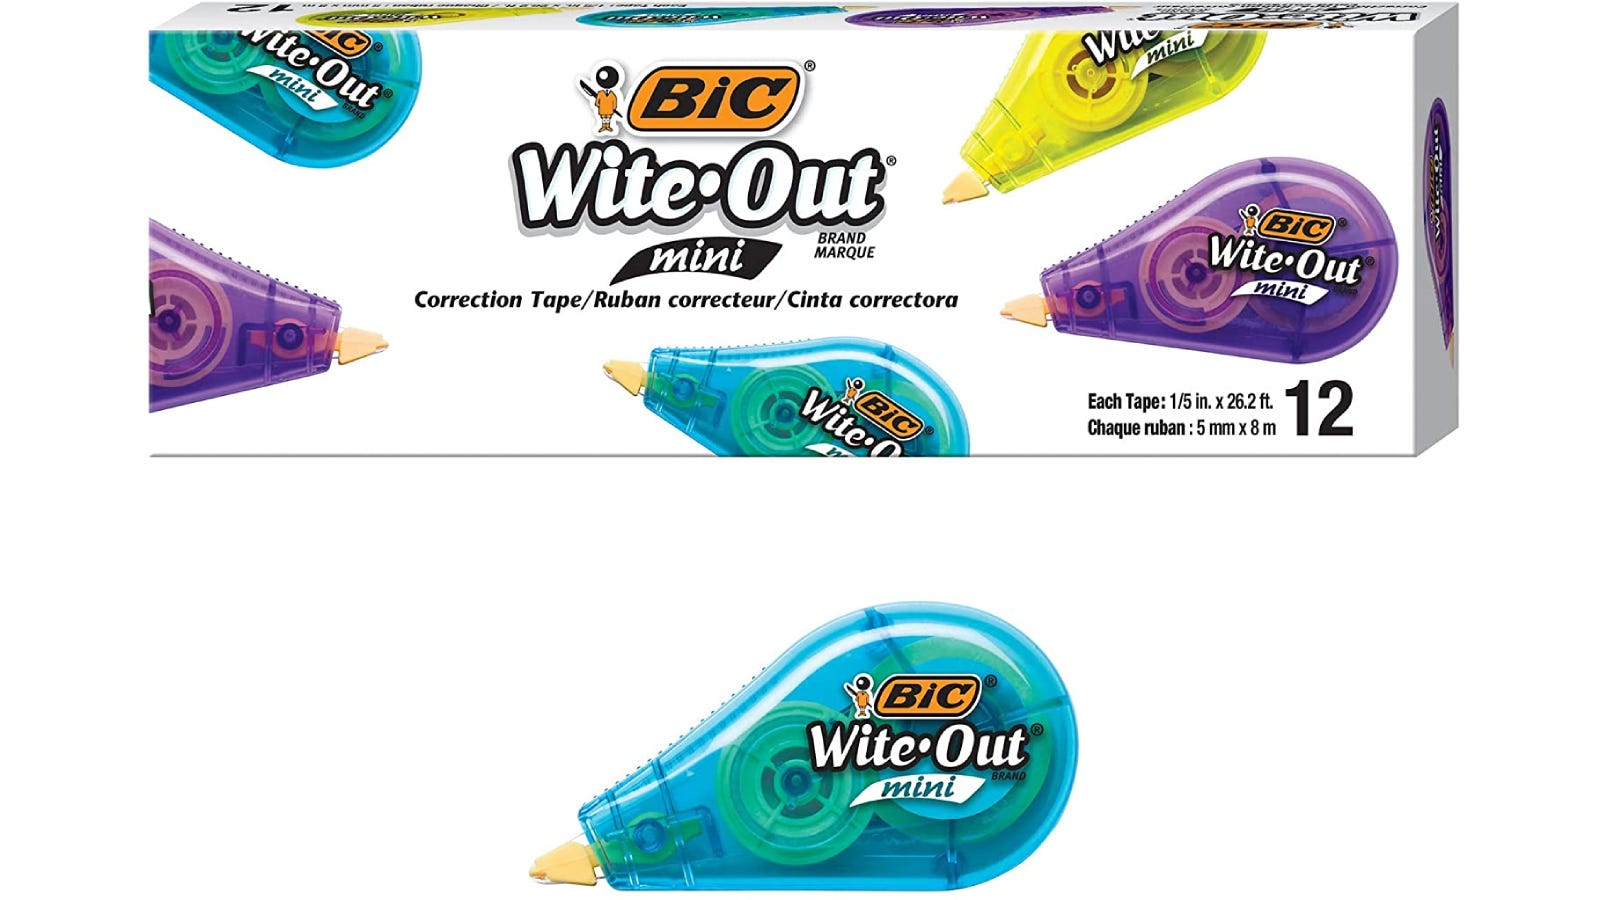 Correction tape shown with its packaging.